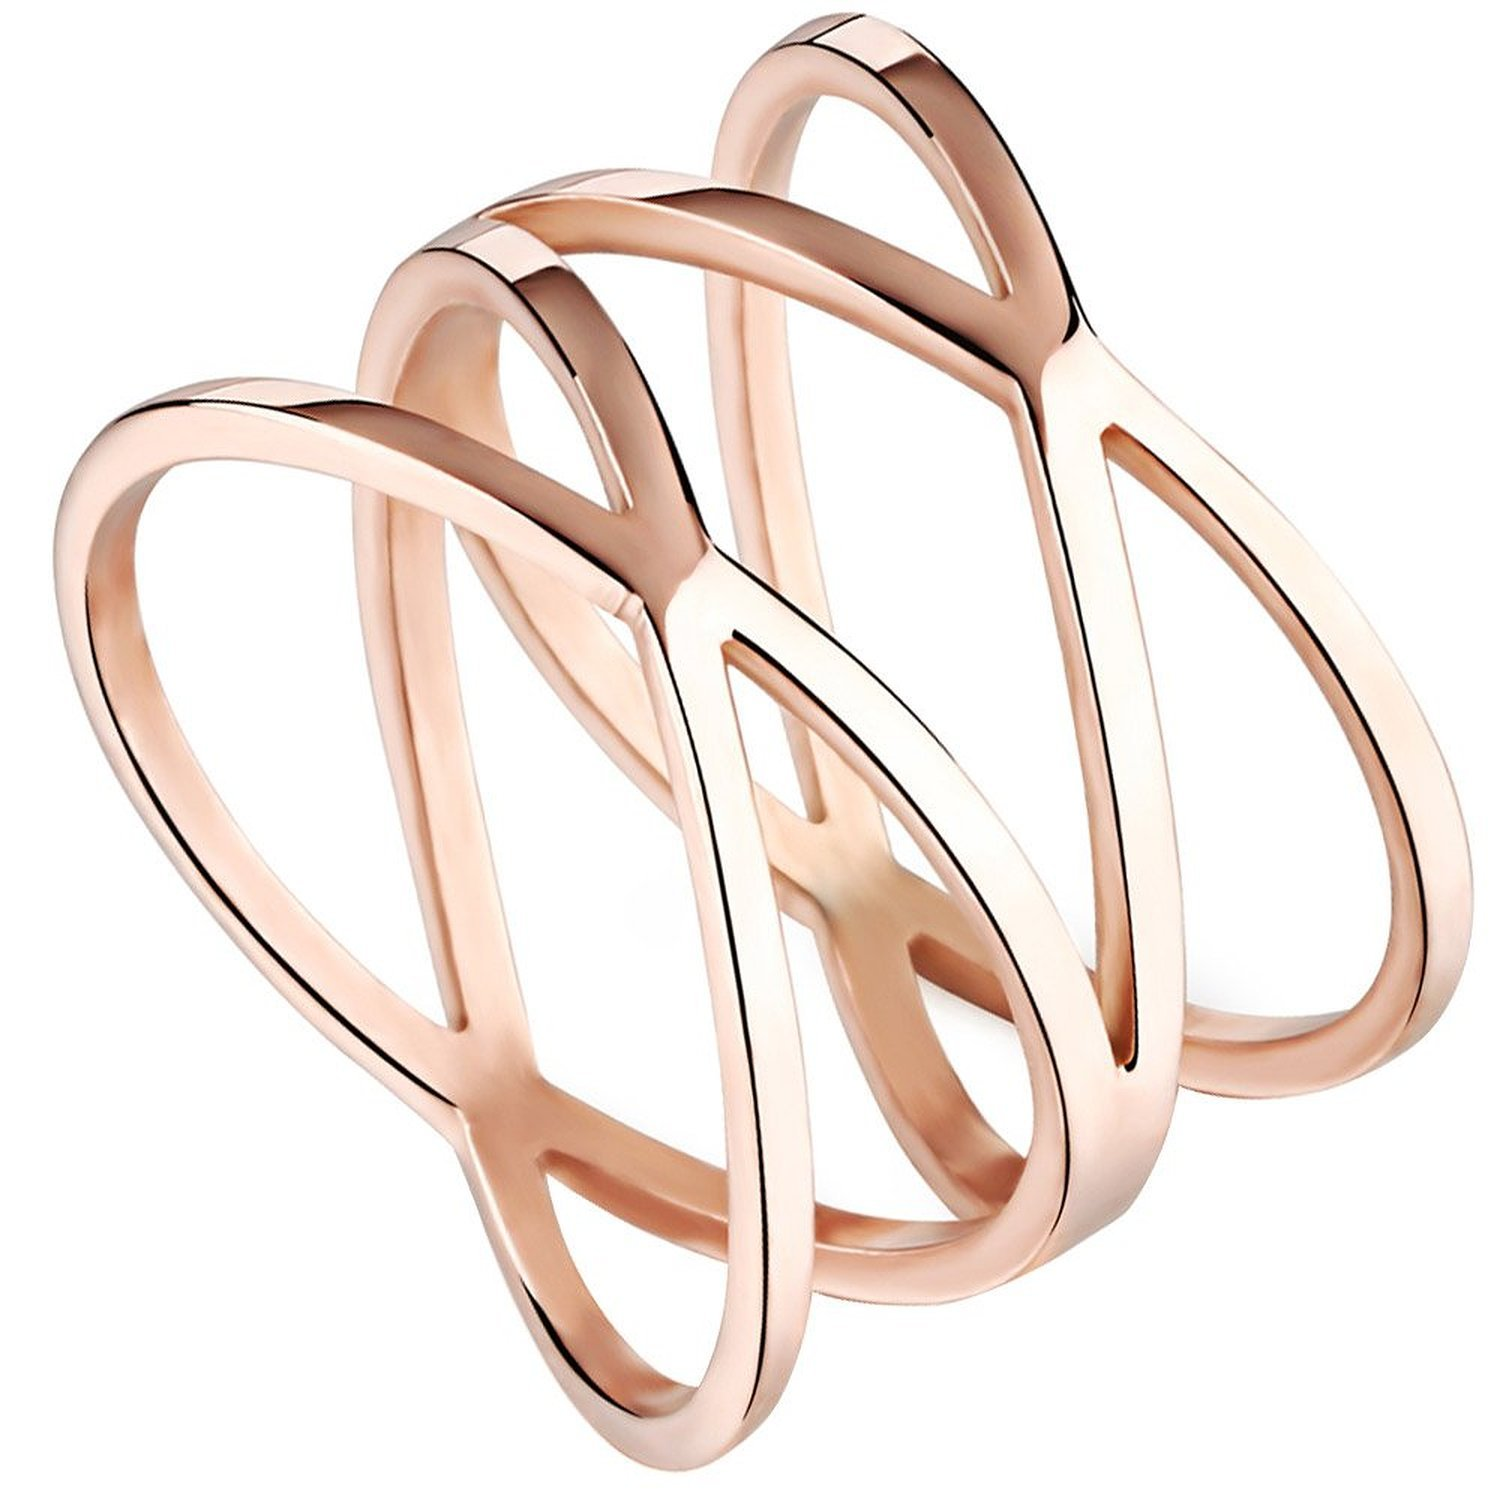 Womens 14MM Rose Gold Tone Stainless Steel Double''X'' Criss Cross Infinity Ring Engagement Wedding Lady Girls Band (10)